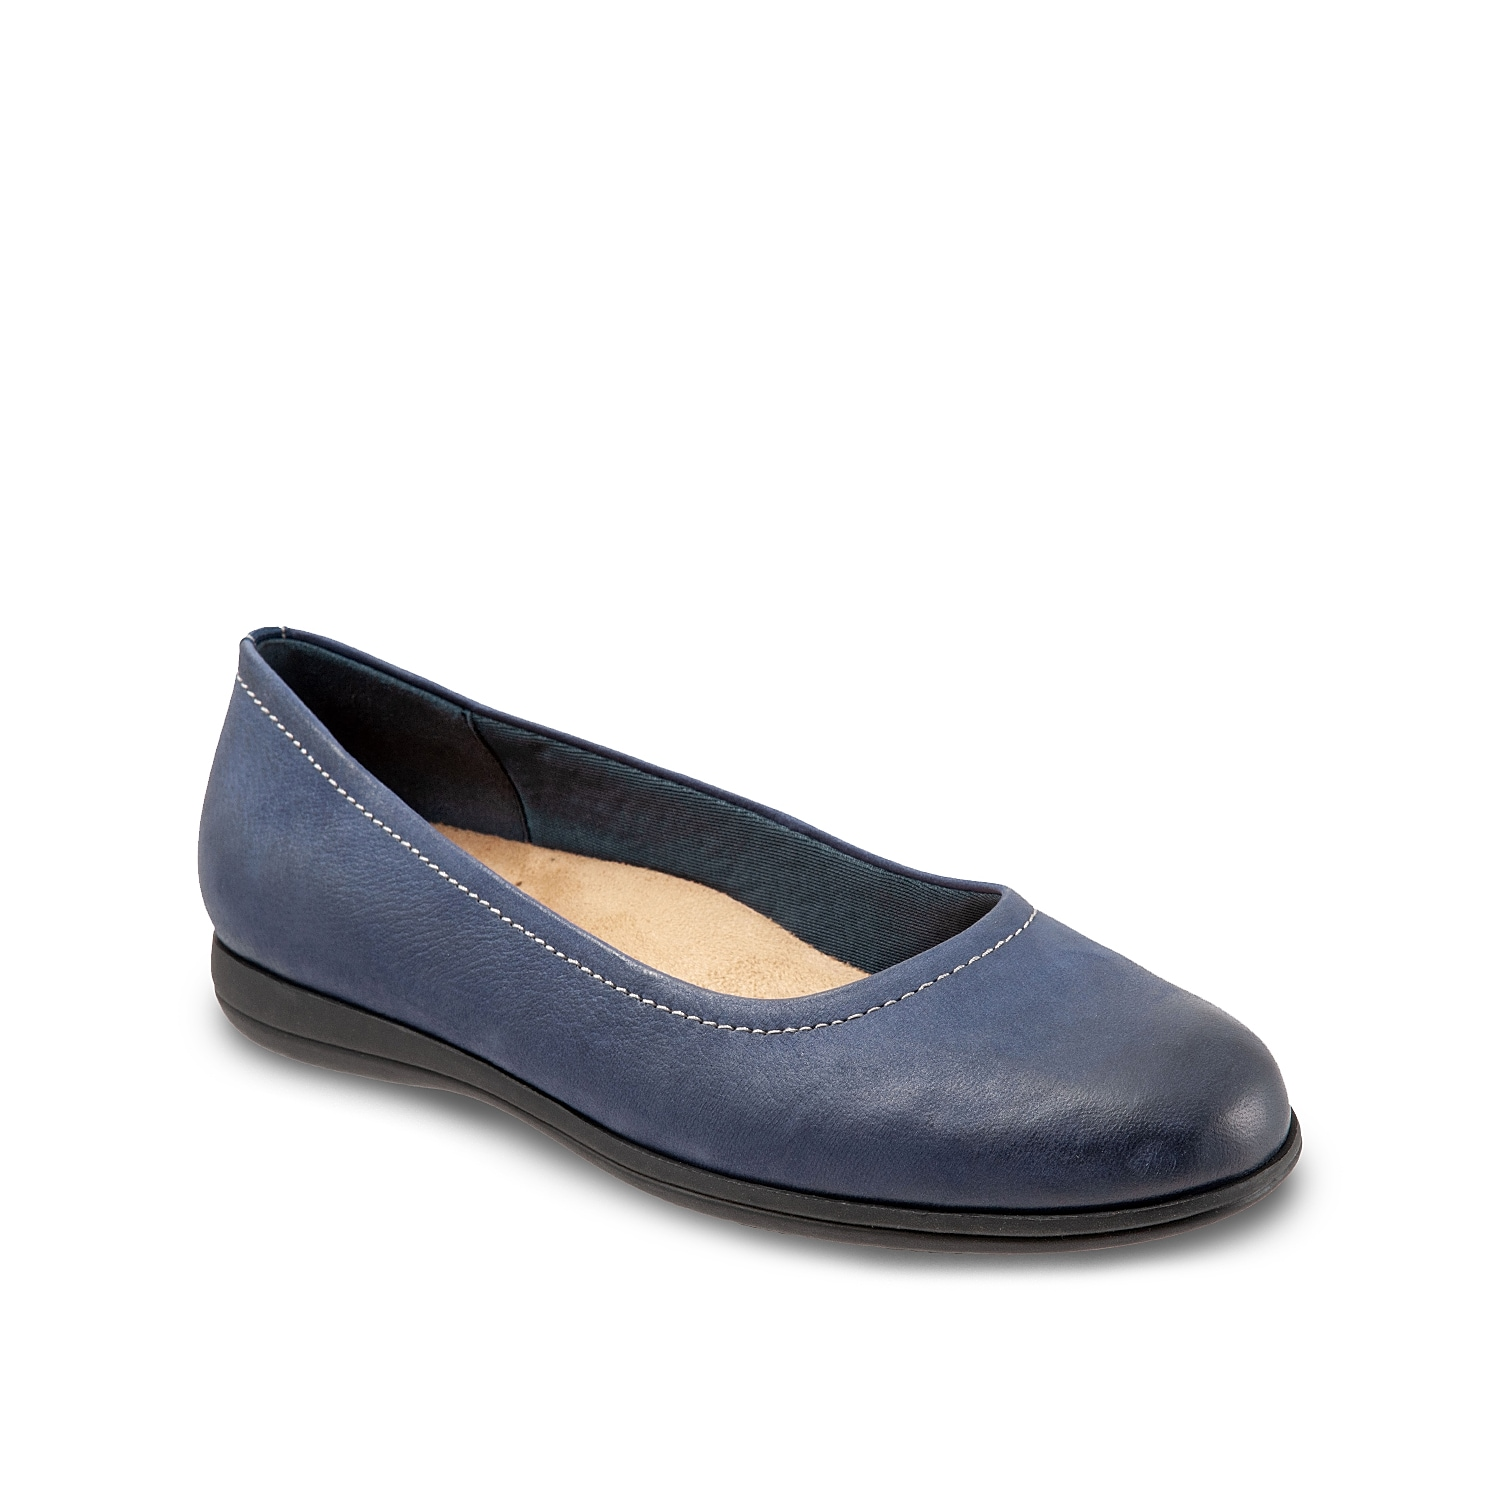 The Darcey flat from Trotters flaunts a versatile silhouette that is easy to pair with any outfit whether it be tailored or casual. A cushioned footbed with arch support and an antimicrobial lining add a comfortable upgrade to this leather slip-on.